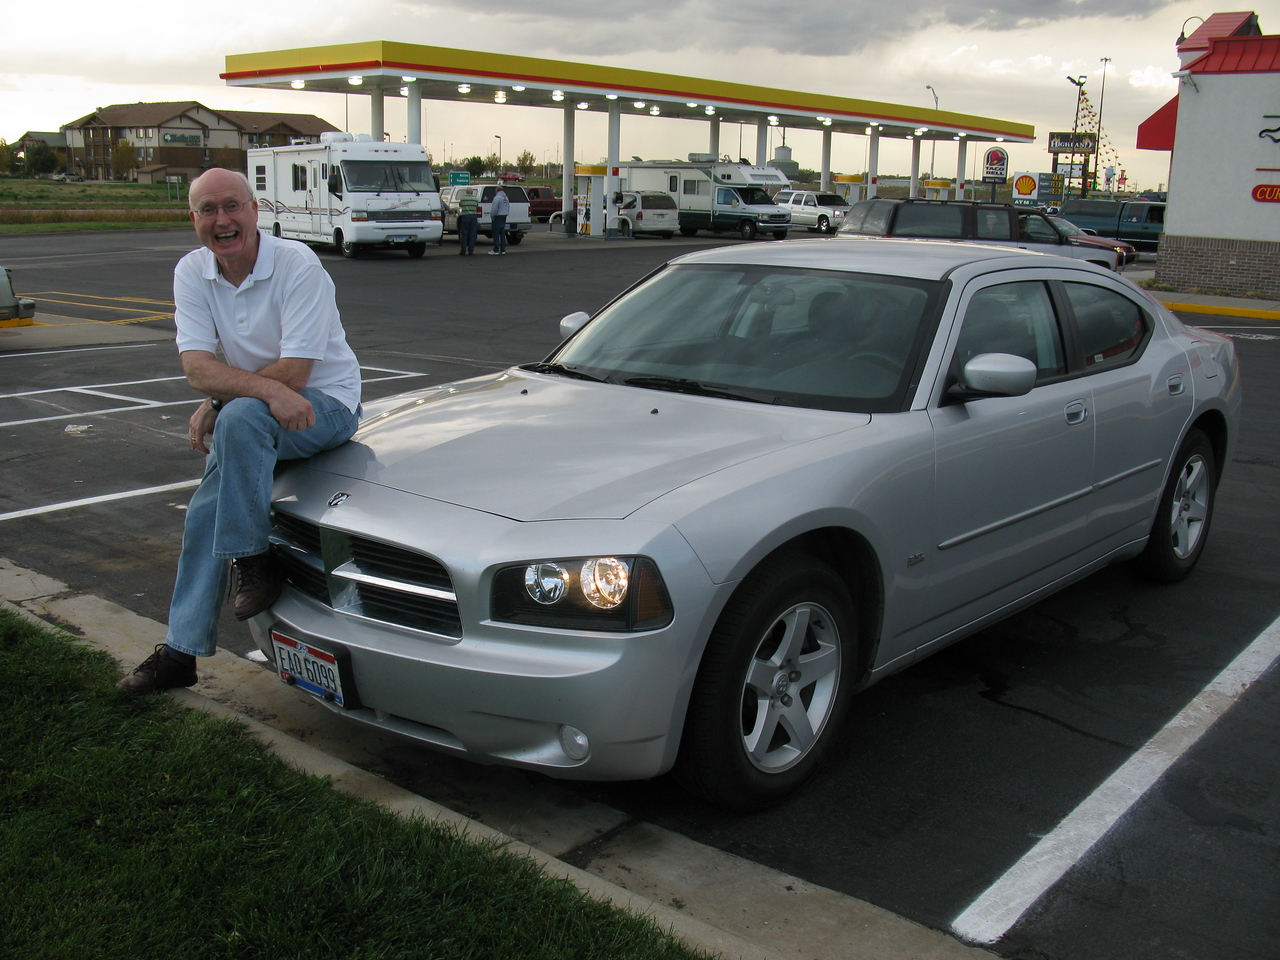 Muscle man with his muscle car...a Dodge charger. Just want to be like you, Gordy & Peggy!<br /> October 9, 2010